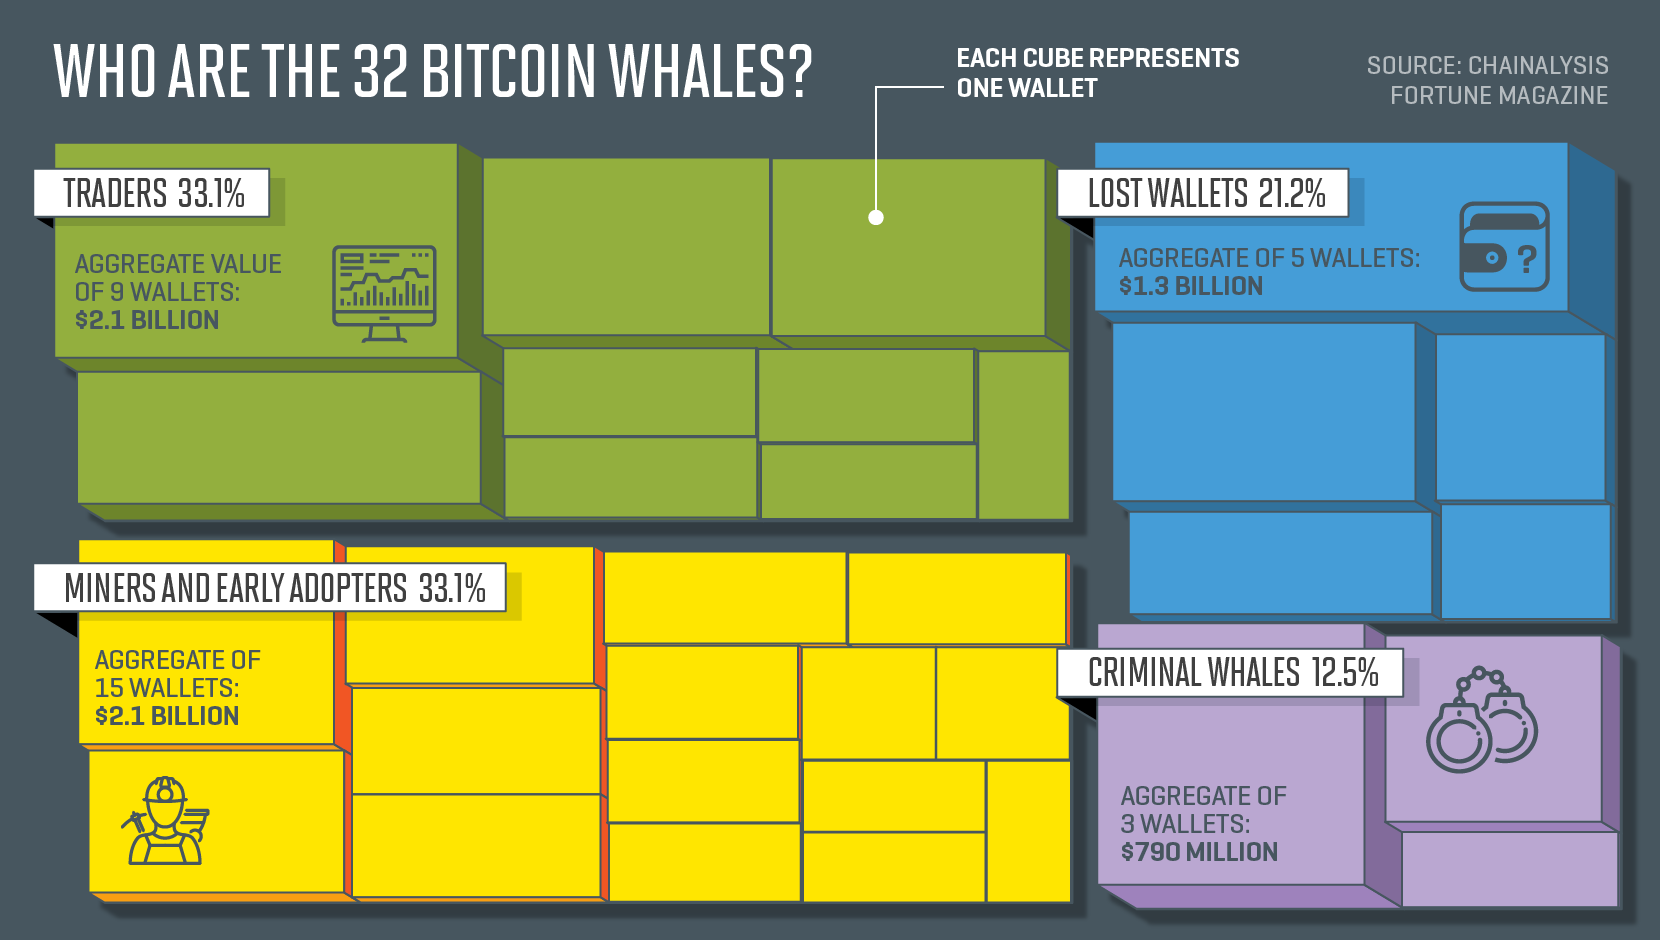 Chart shows biggest Bitcoin whales